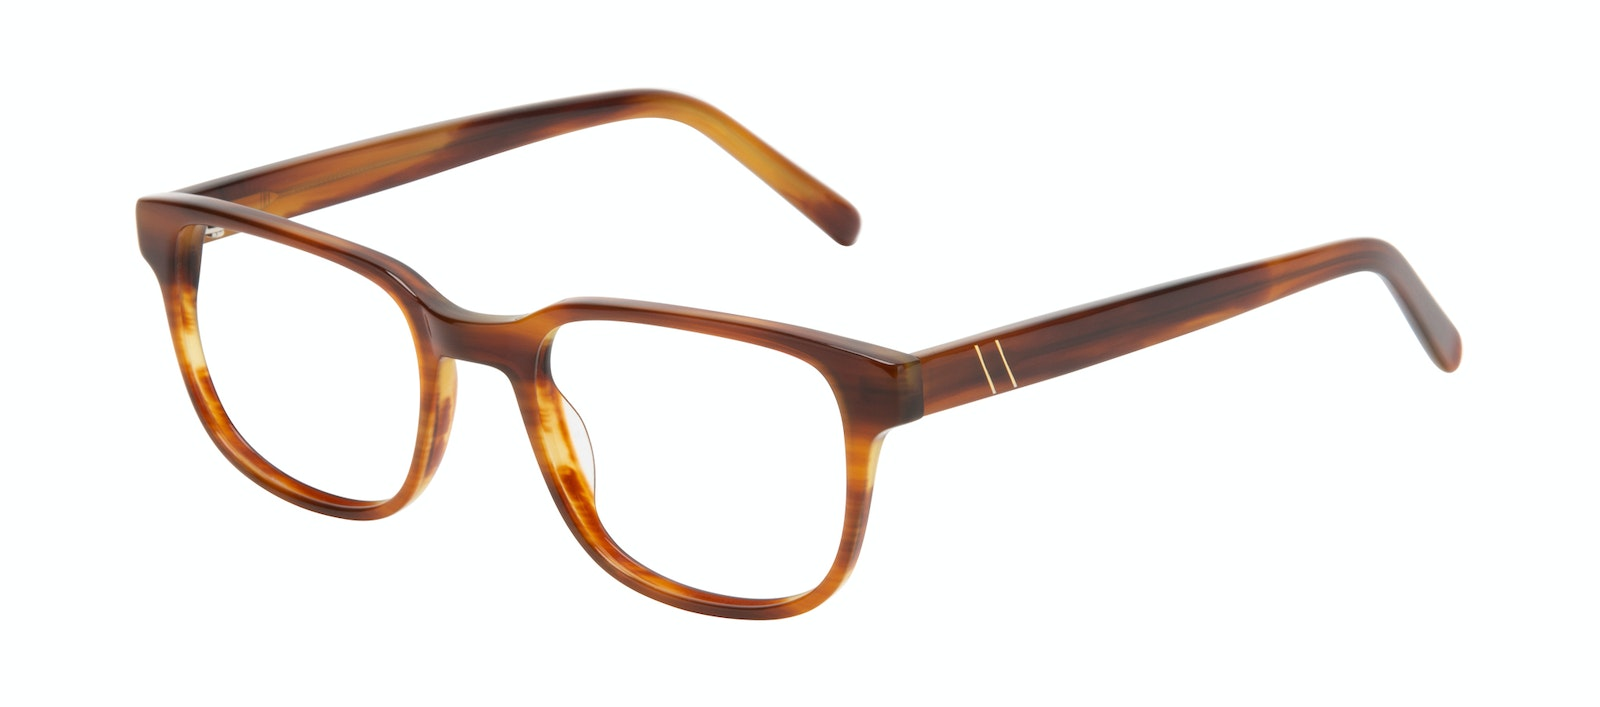 Affordable Fashion Glasses Square Eyeglasses Men Role Havana Tilt